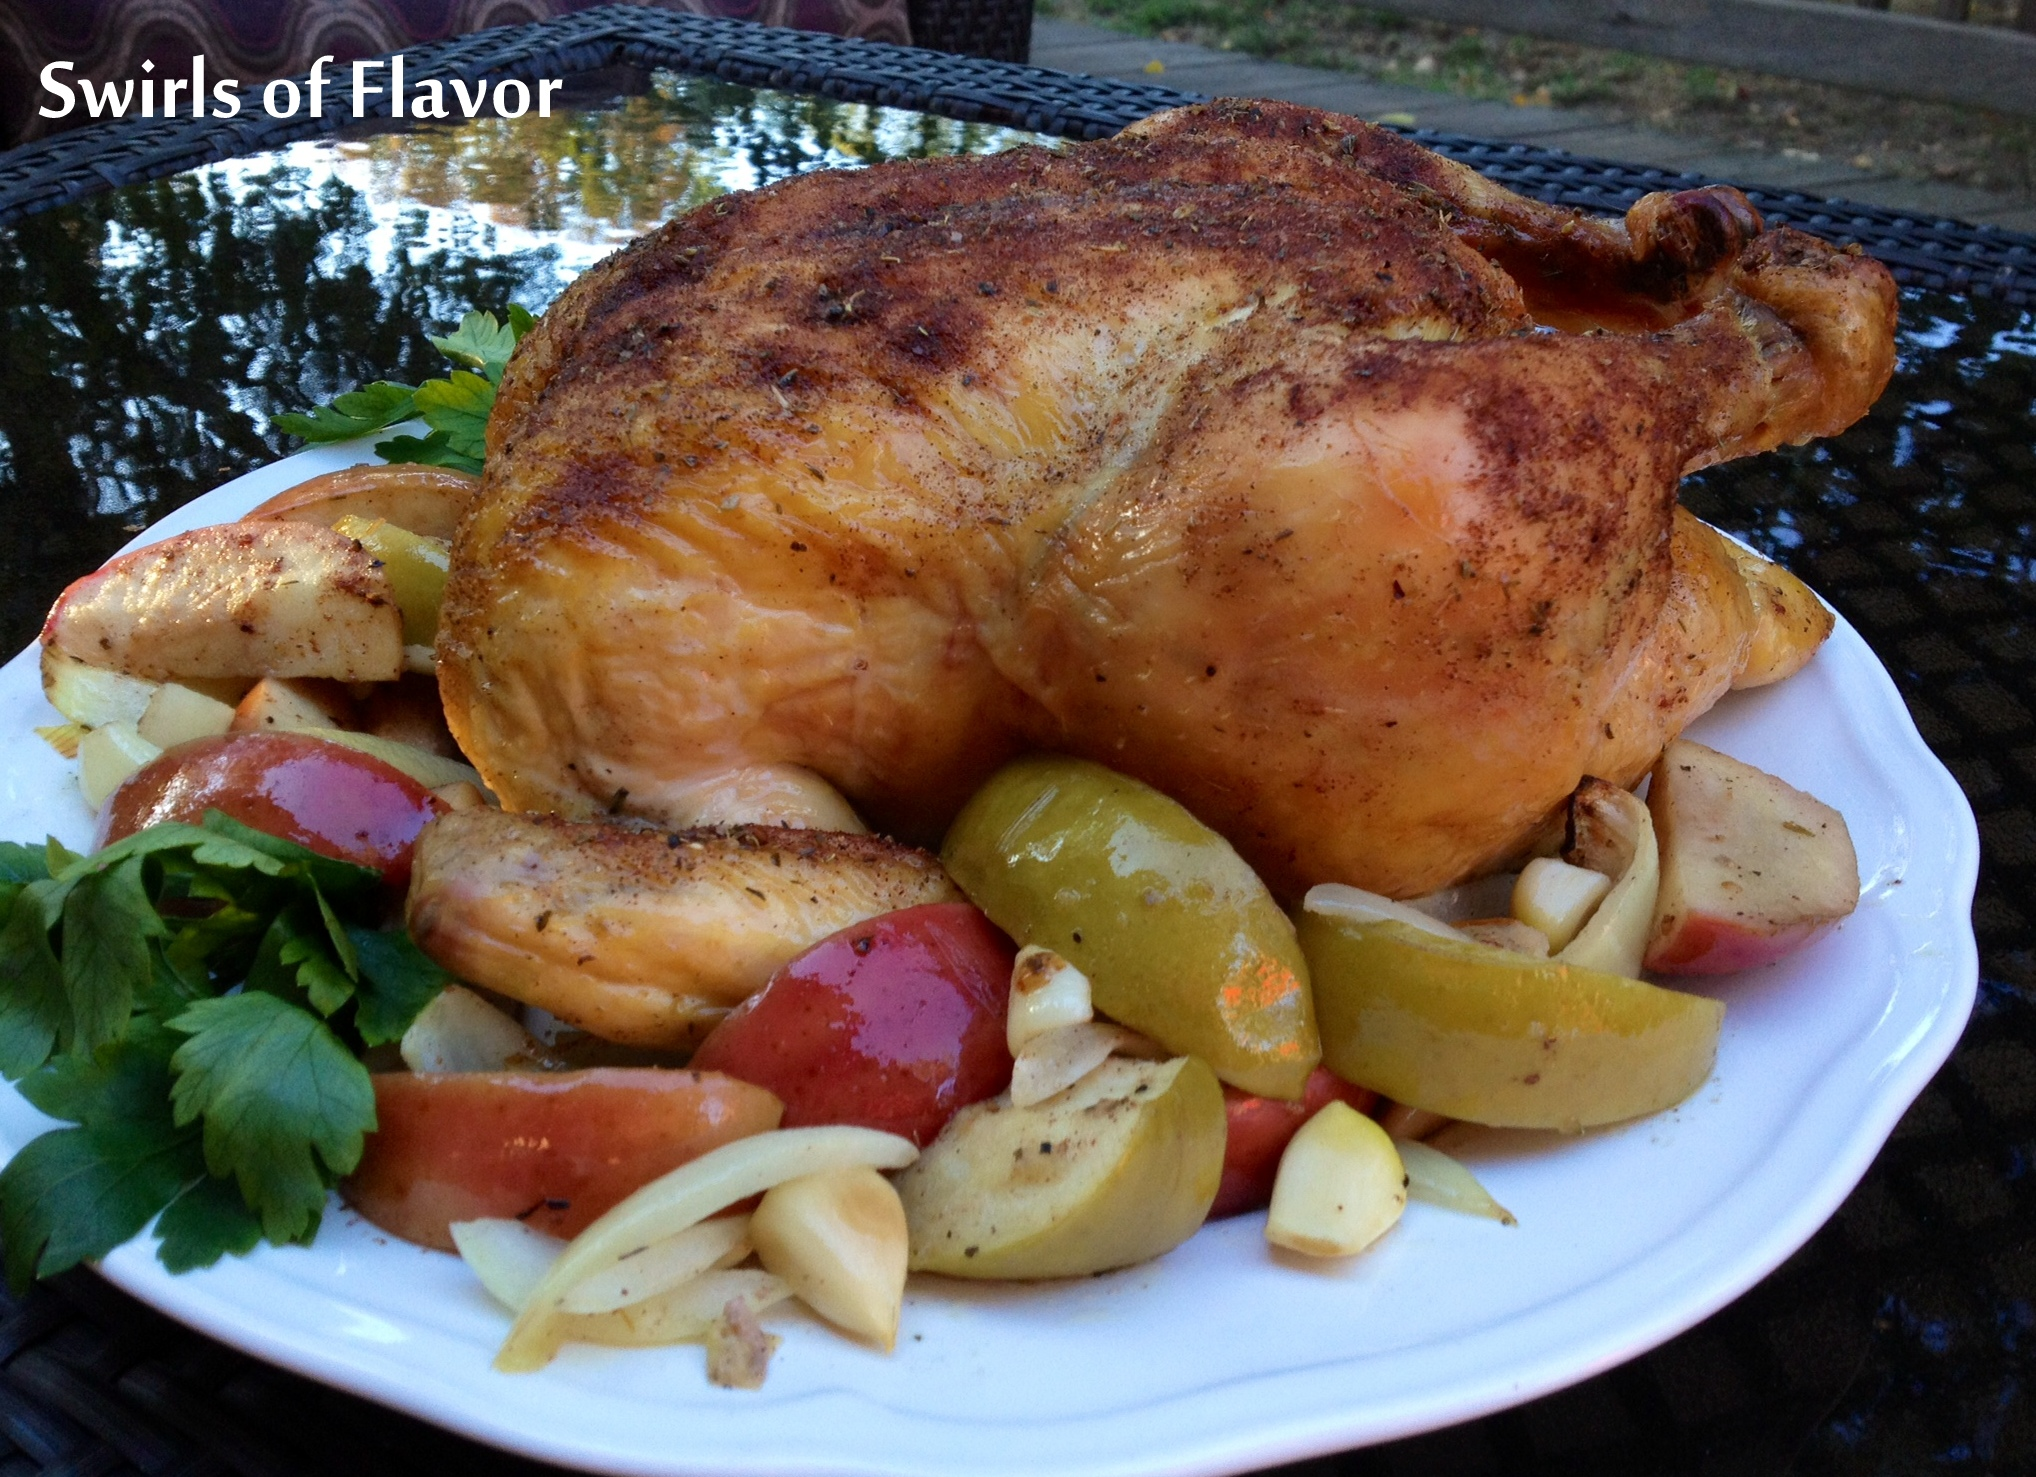 Roasted Cinnamon Apples N Chicken is an easy recipe of melt-in-your-mouth buttery apples, savory onions, tender sweet cloves of roasted garlicand chicken seasoned with the warm spices of autumn. A delicious comfort food for fall! #chicken #apples #roastedchicken #comfortfood 3sundaysupper #fallrecipe #easyrecipe #cinnamon #redapples #grannysmithapples #swirlsofflavor